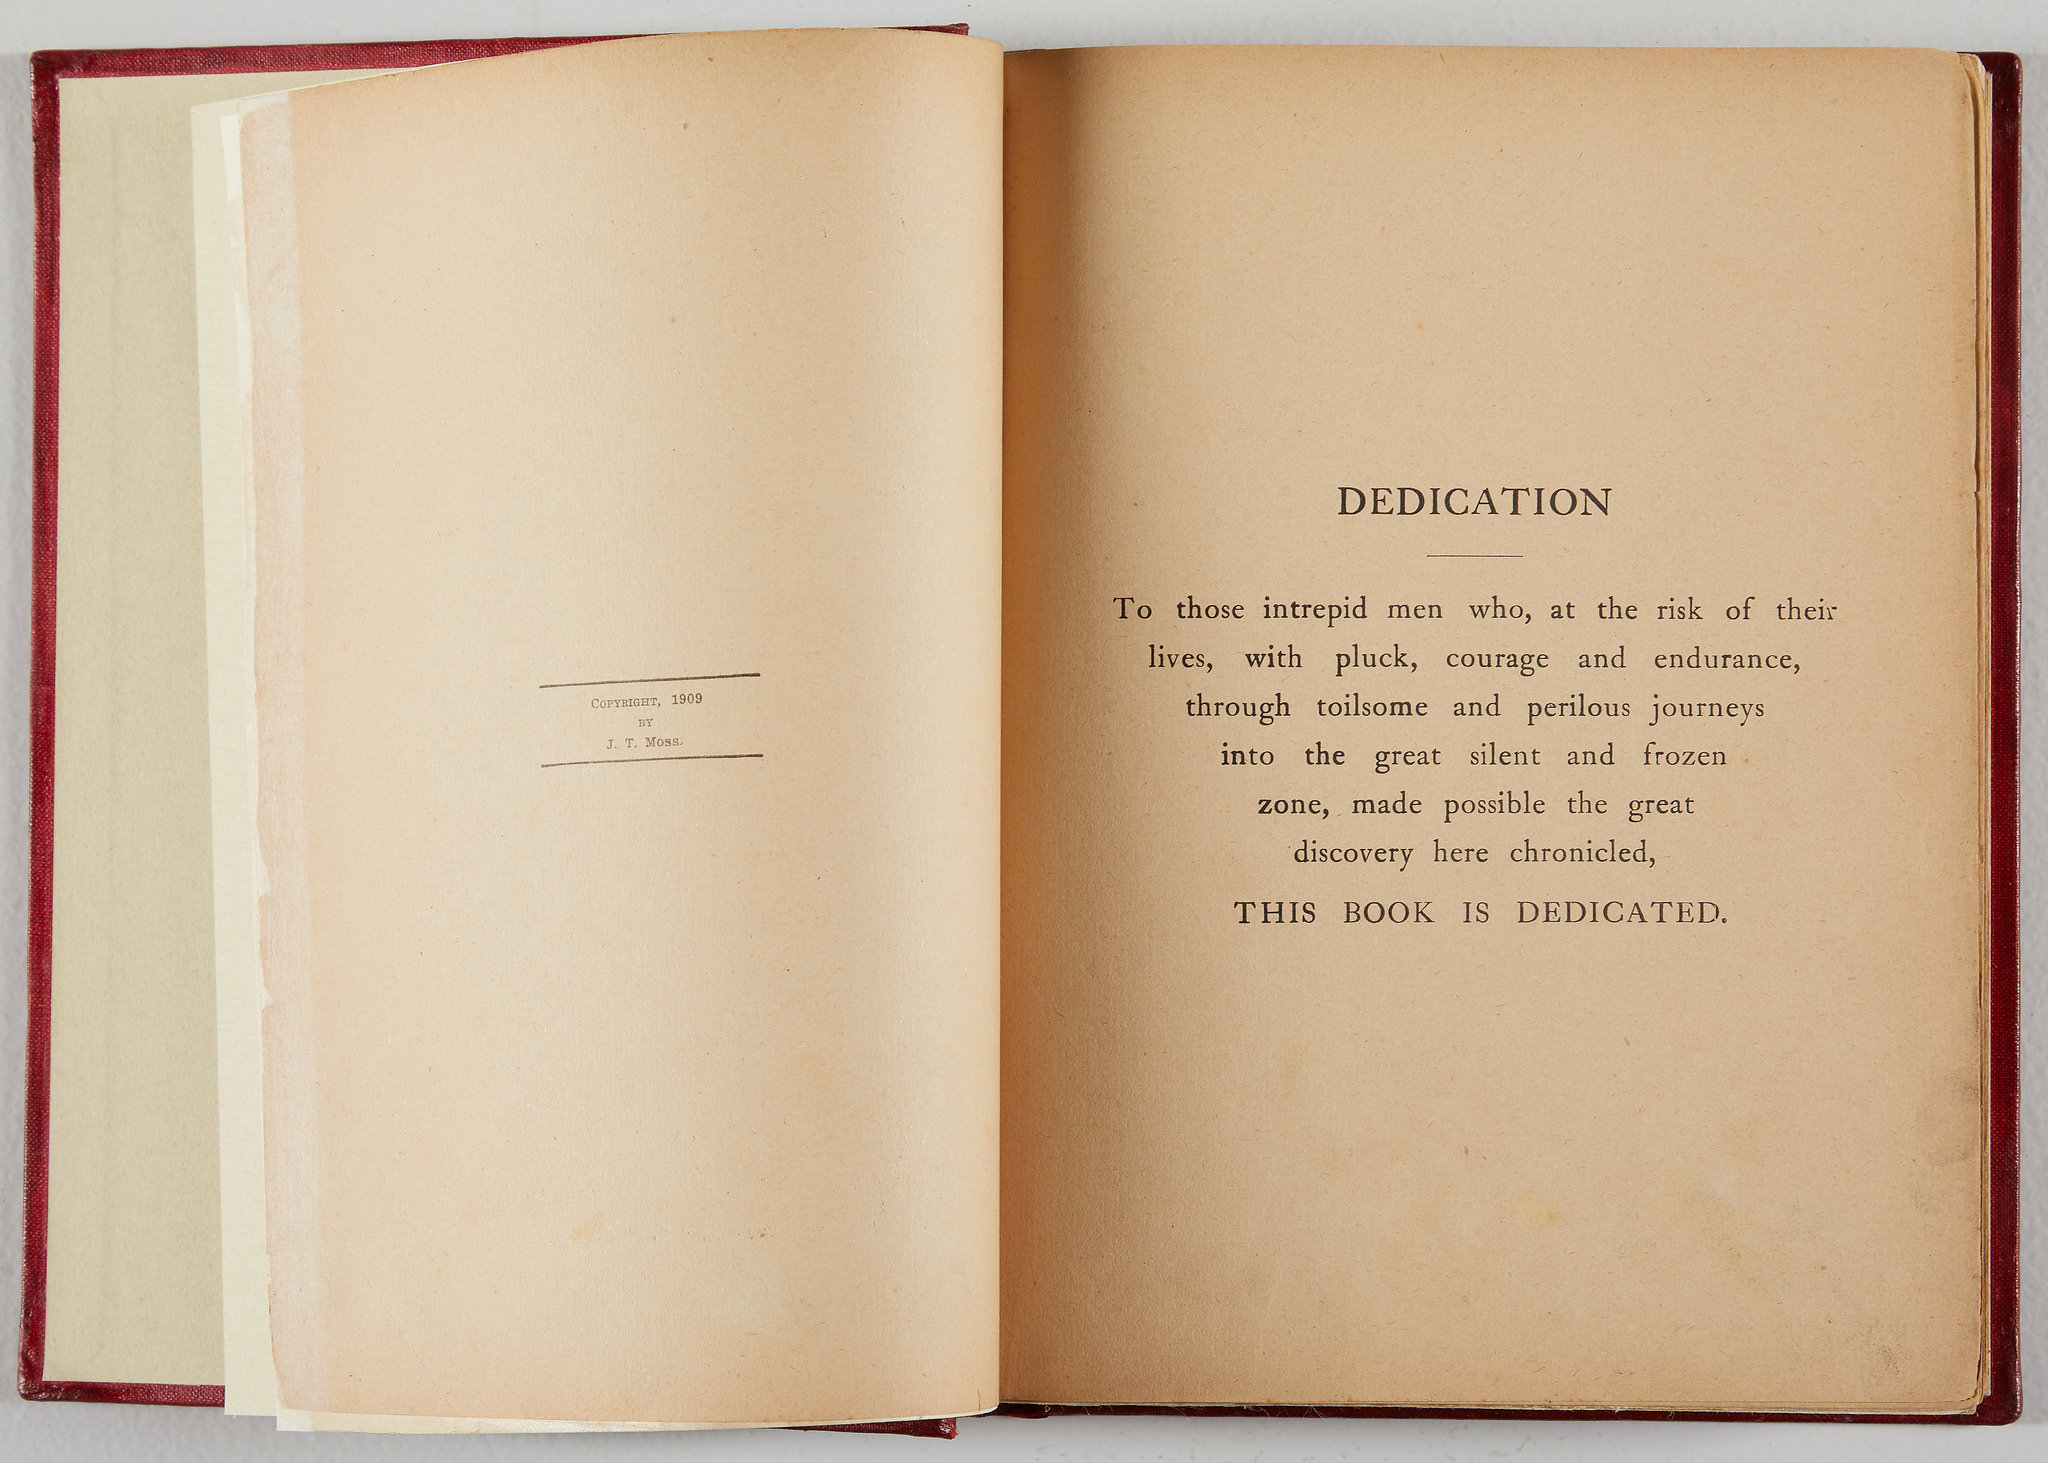 After Treatment- Damaged pages repaired using Asian tissue and paste